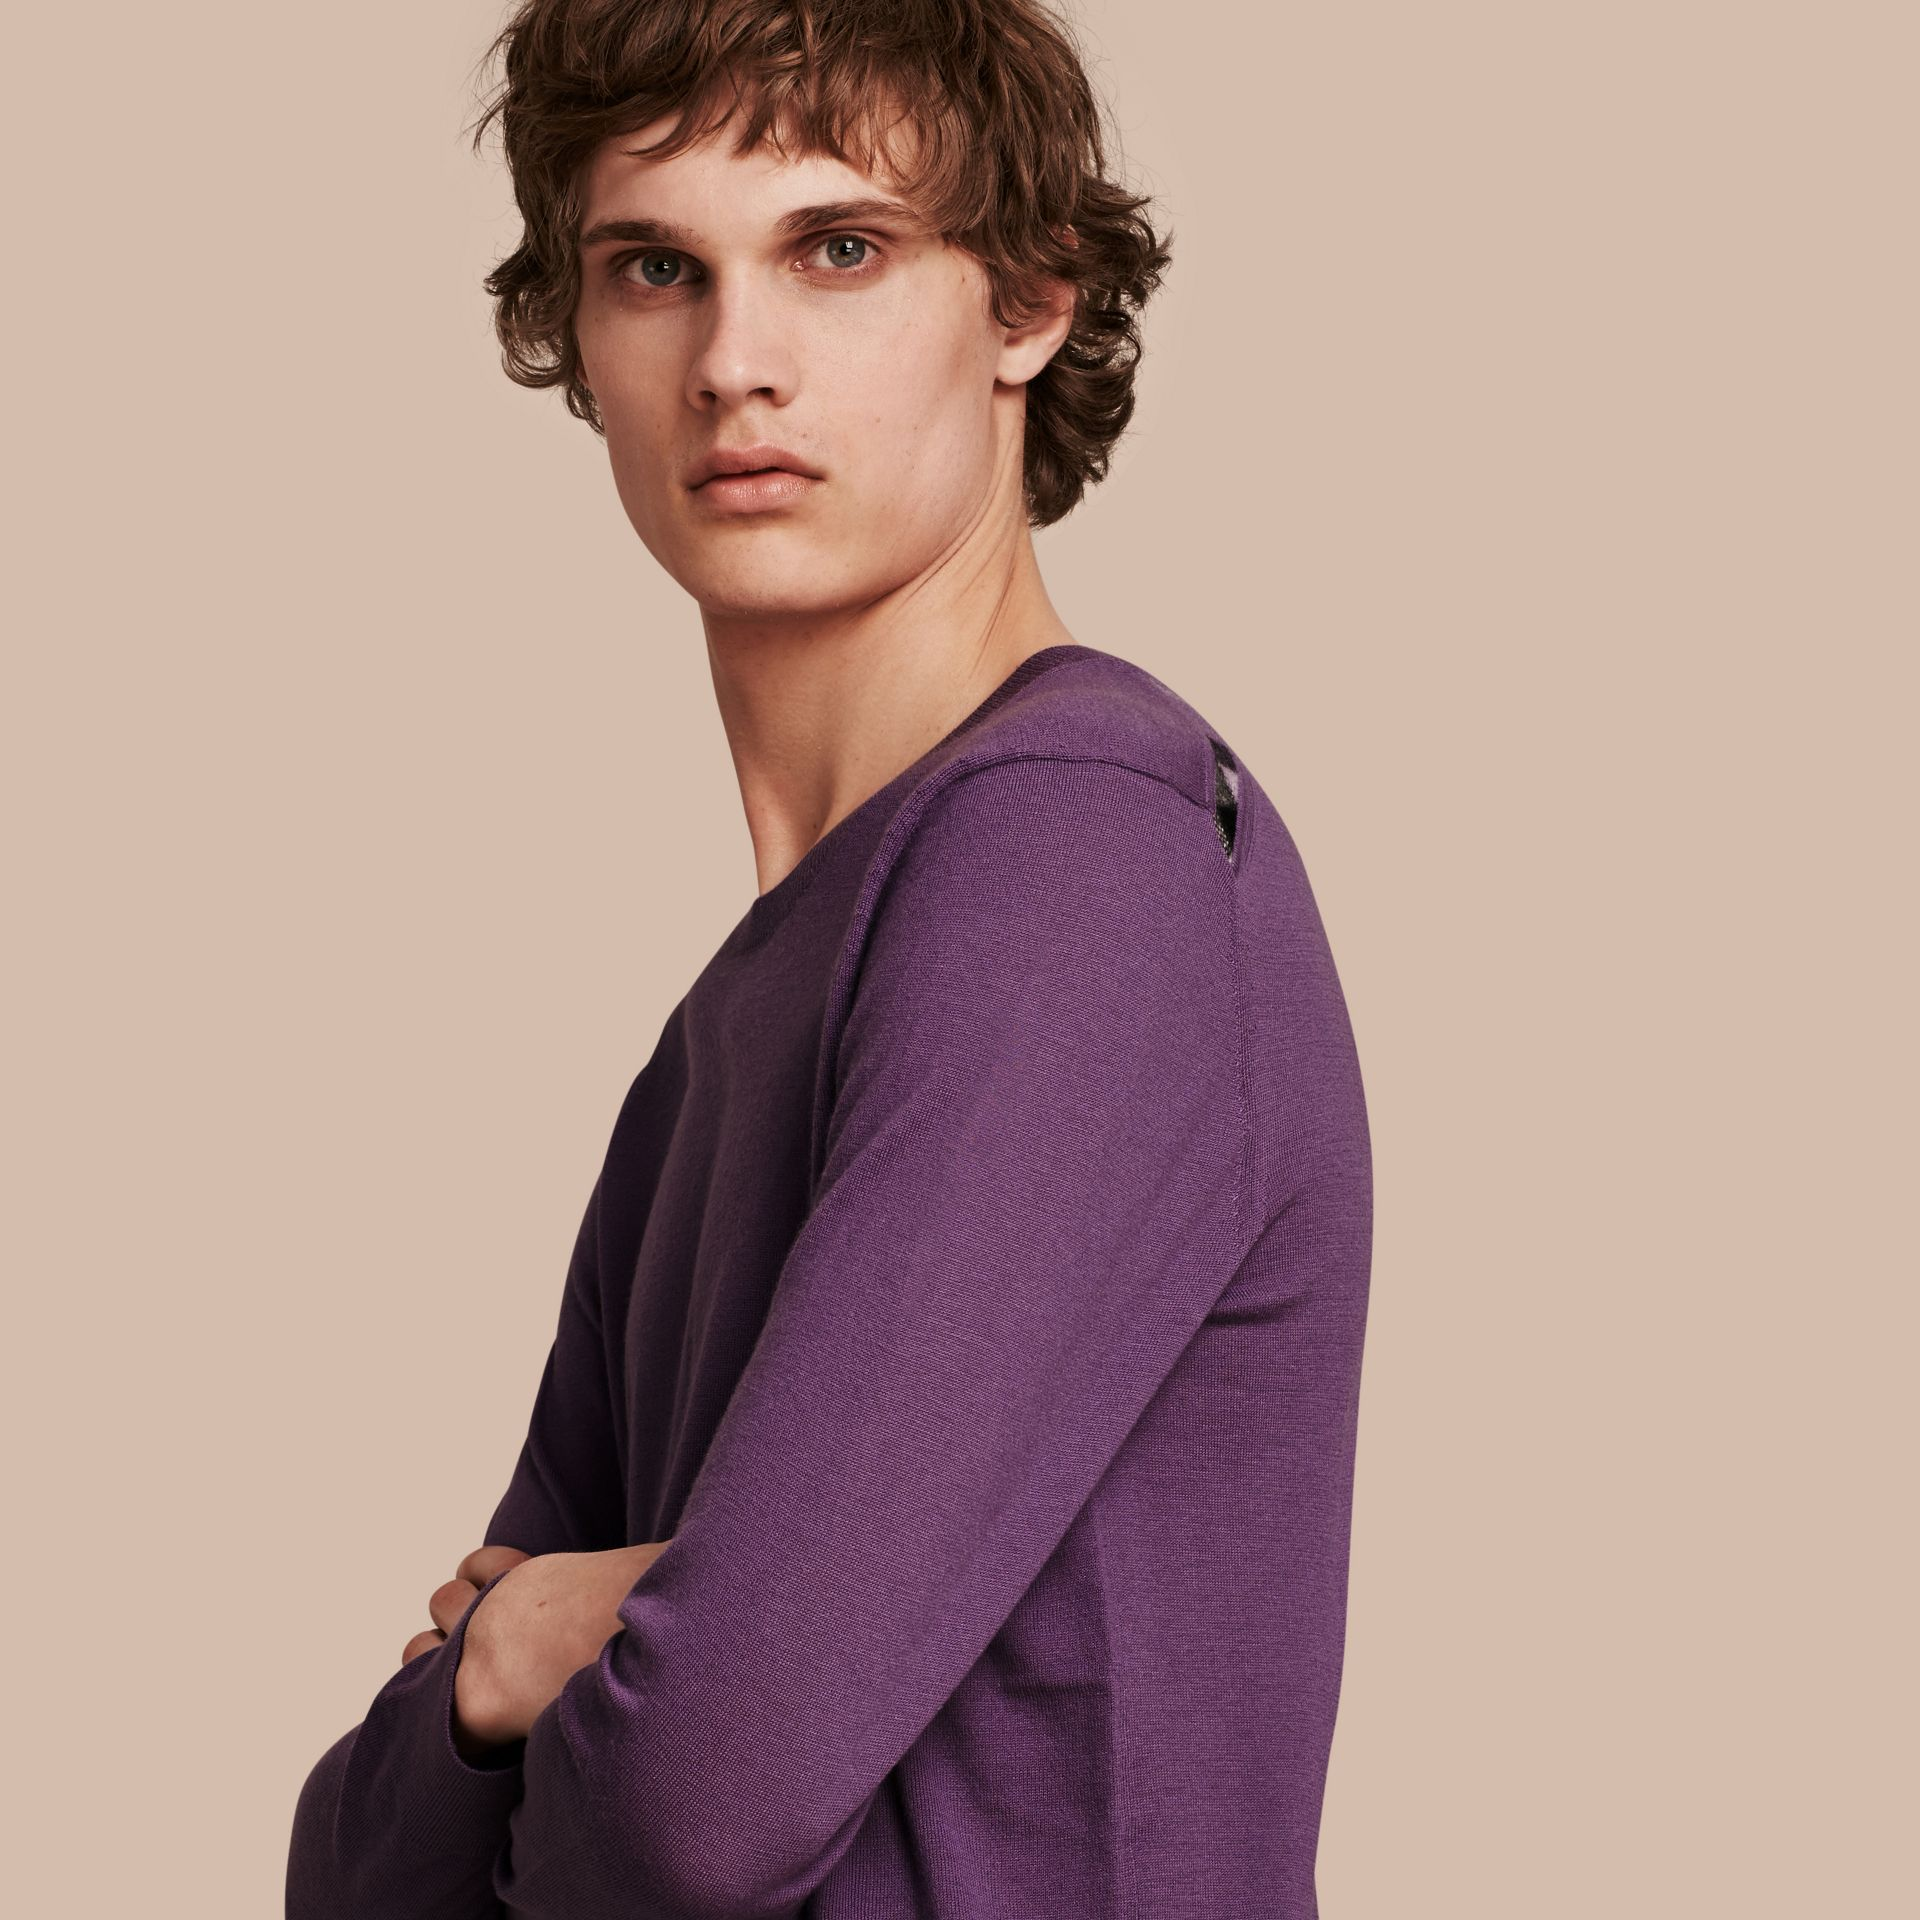 Dusty lilac Lightweight Crew Neck Cashmere Sweater with Check Trim Dusty Lilac - gallery image 1